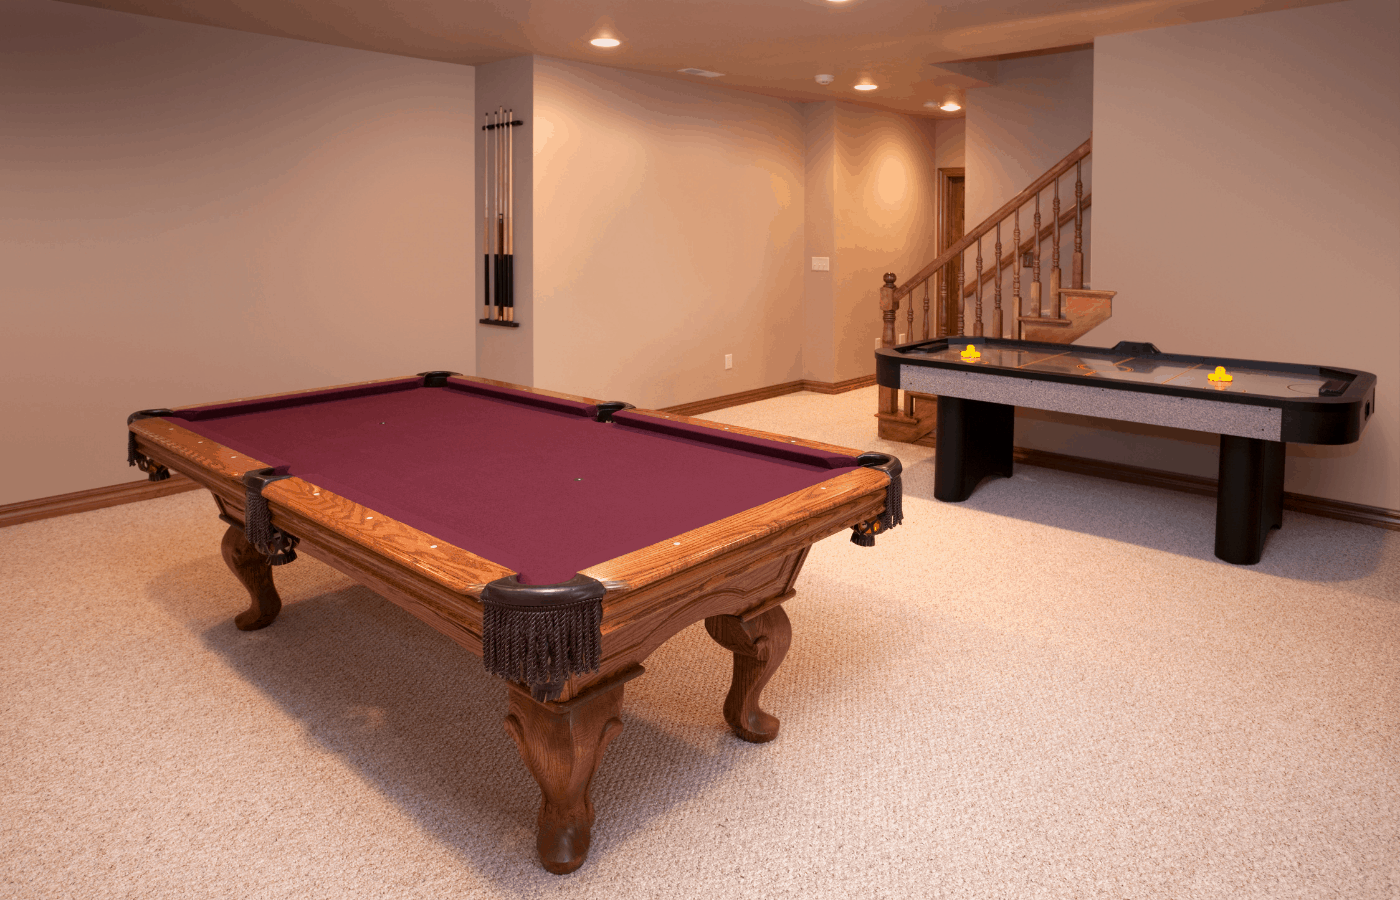 What Is the Best Sized Pool Table for a Basement